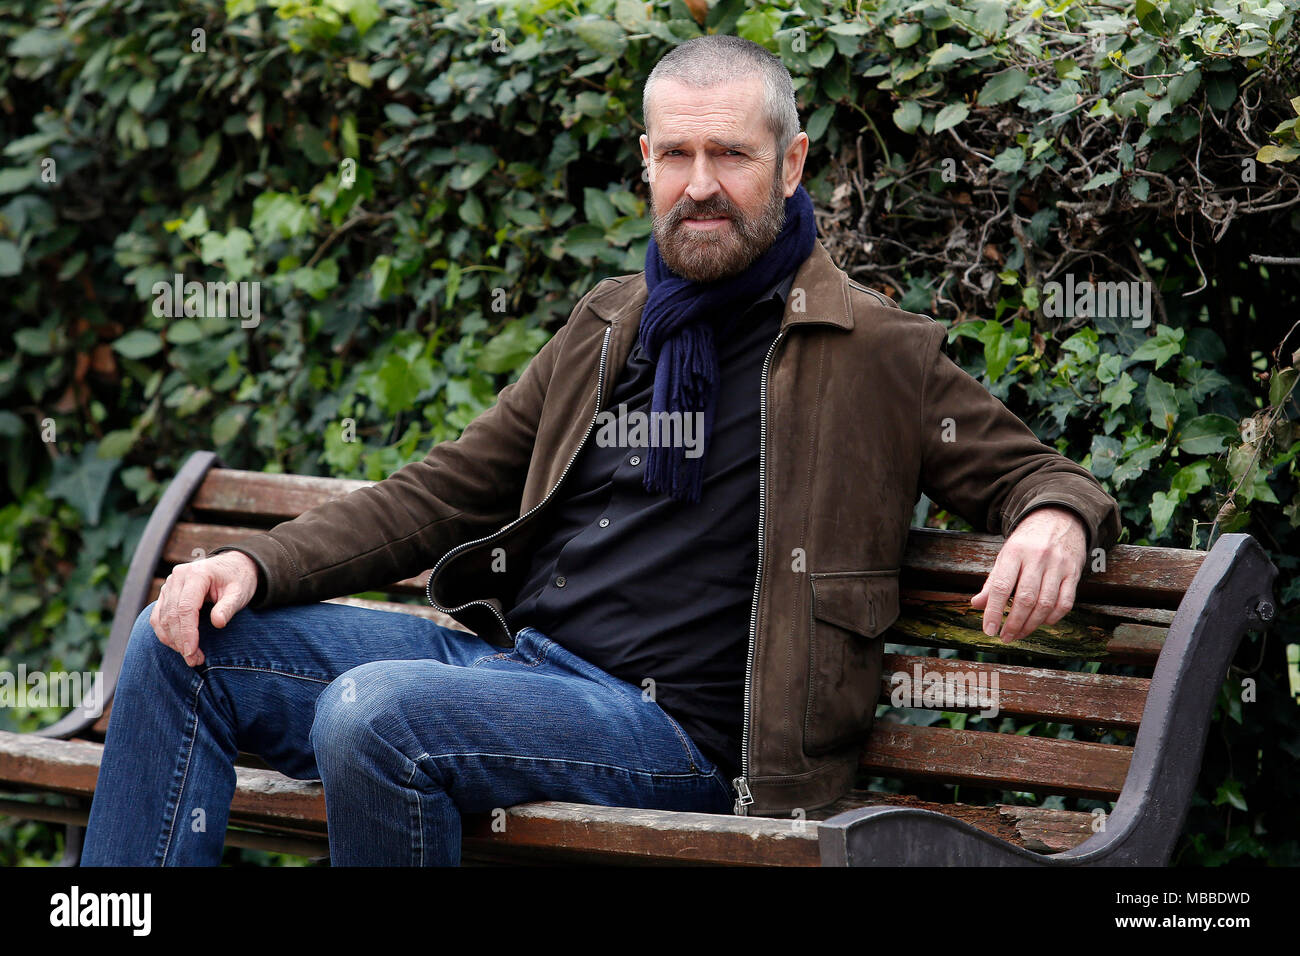 Rupert Everett Roma 10/04/2018. The Happy Prince - L'ultimo ritratto di Oscar Wilde Photocall. Rome April 10th Rupert Everett poses for photographers during the premiere of the film The Happy Prince  Foto Samantha Zucchi Insidefoto - Stock Image